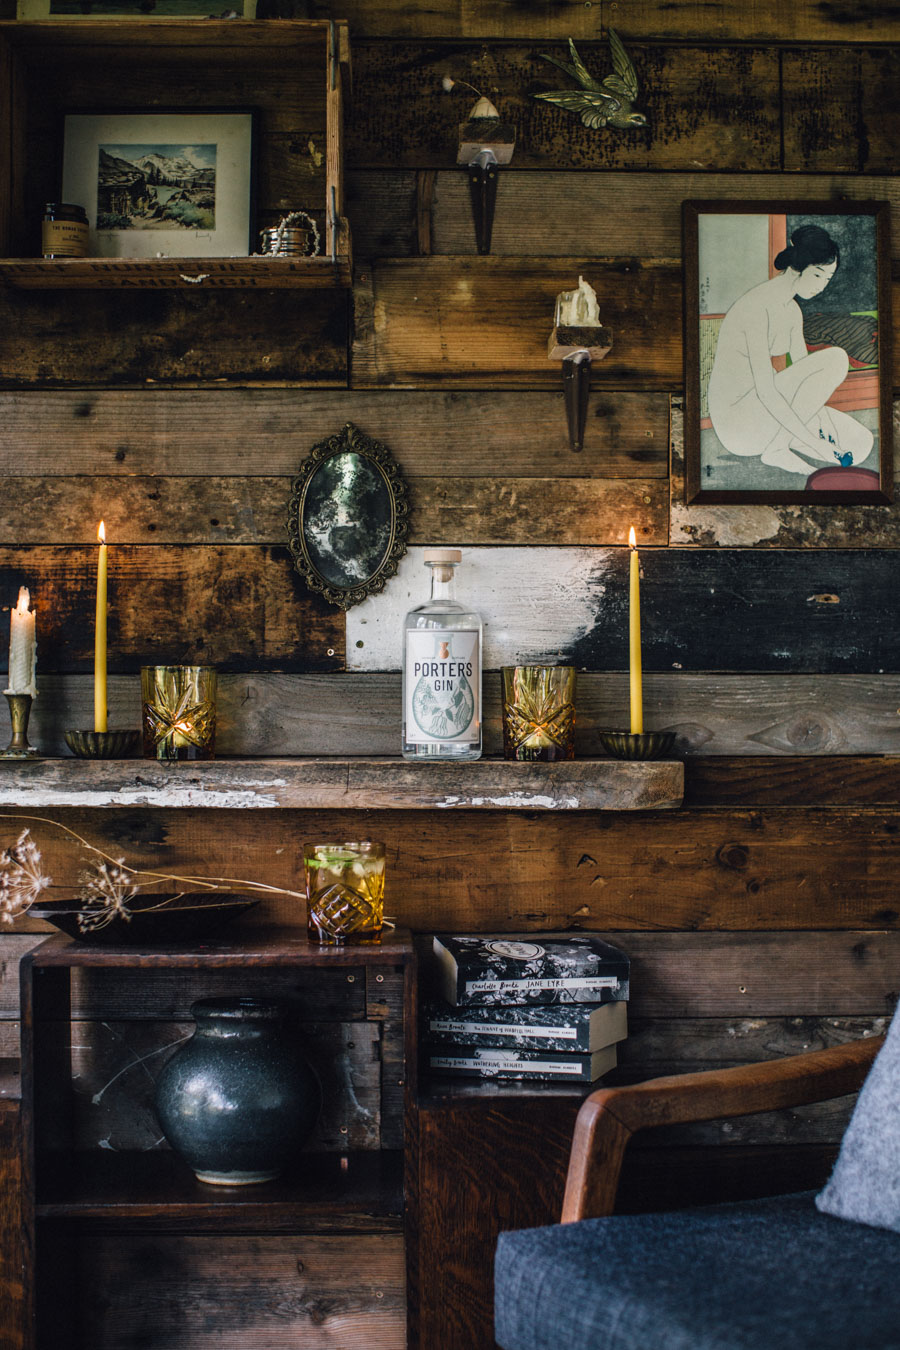 Gin in the Tea shed